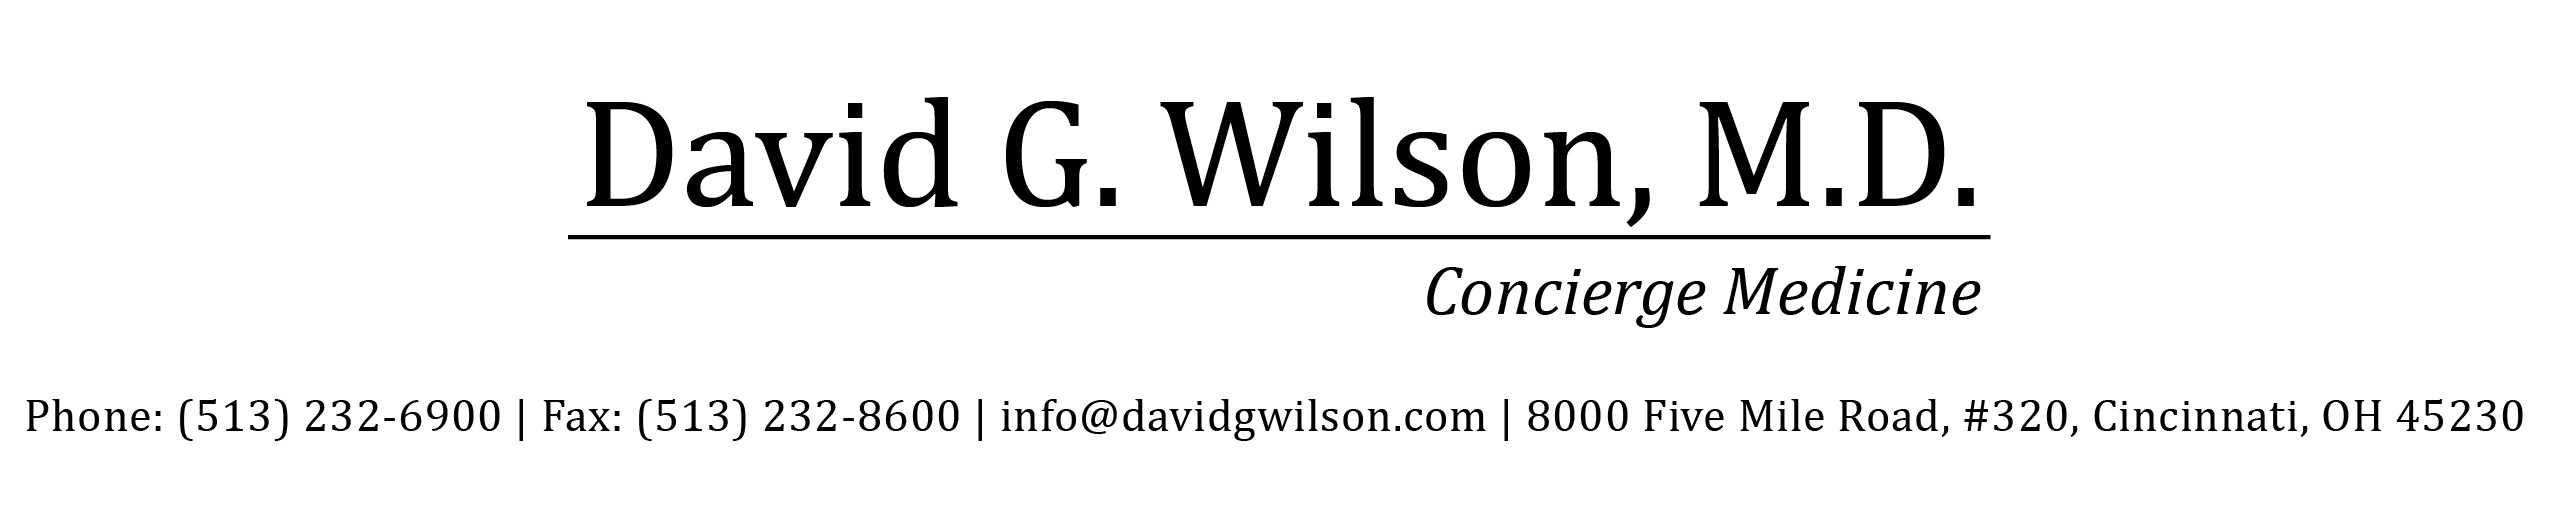 Dr. Wilson logo and contact information